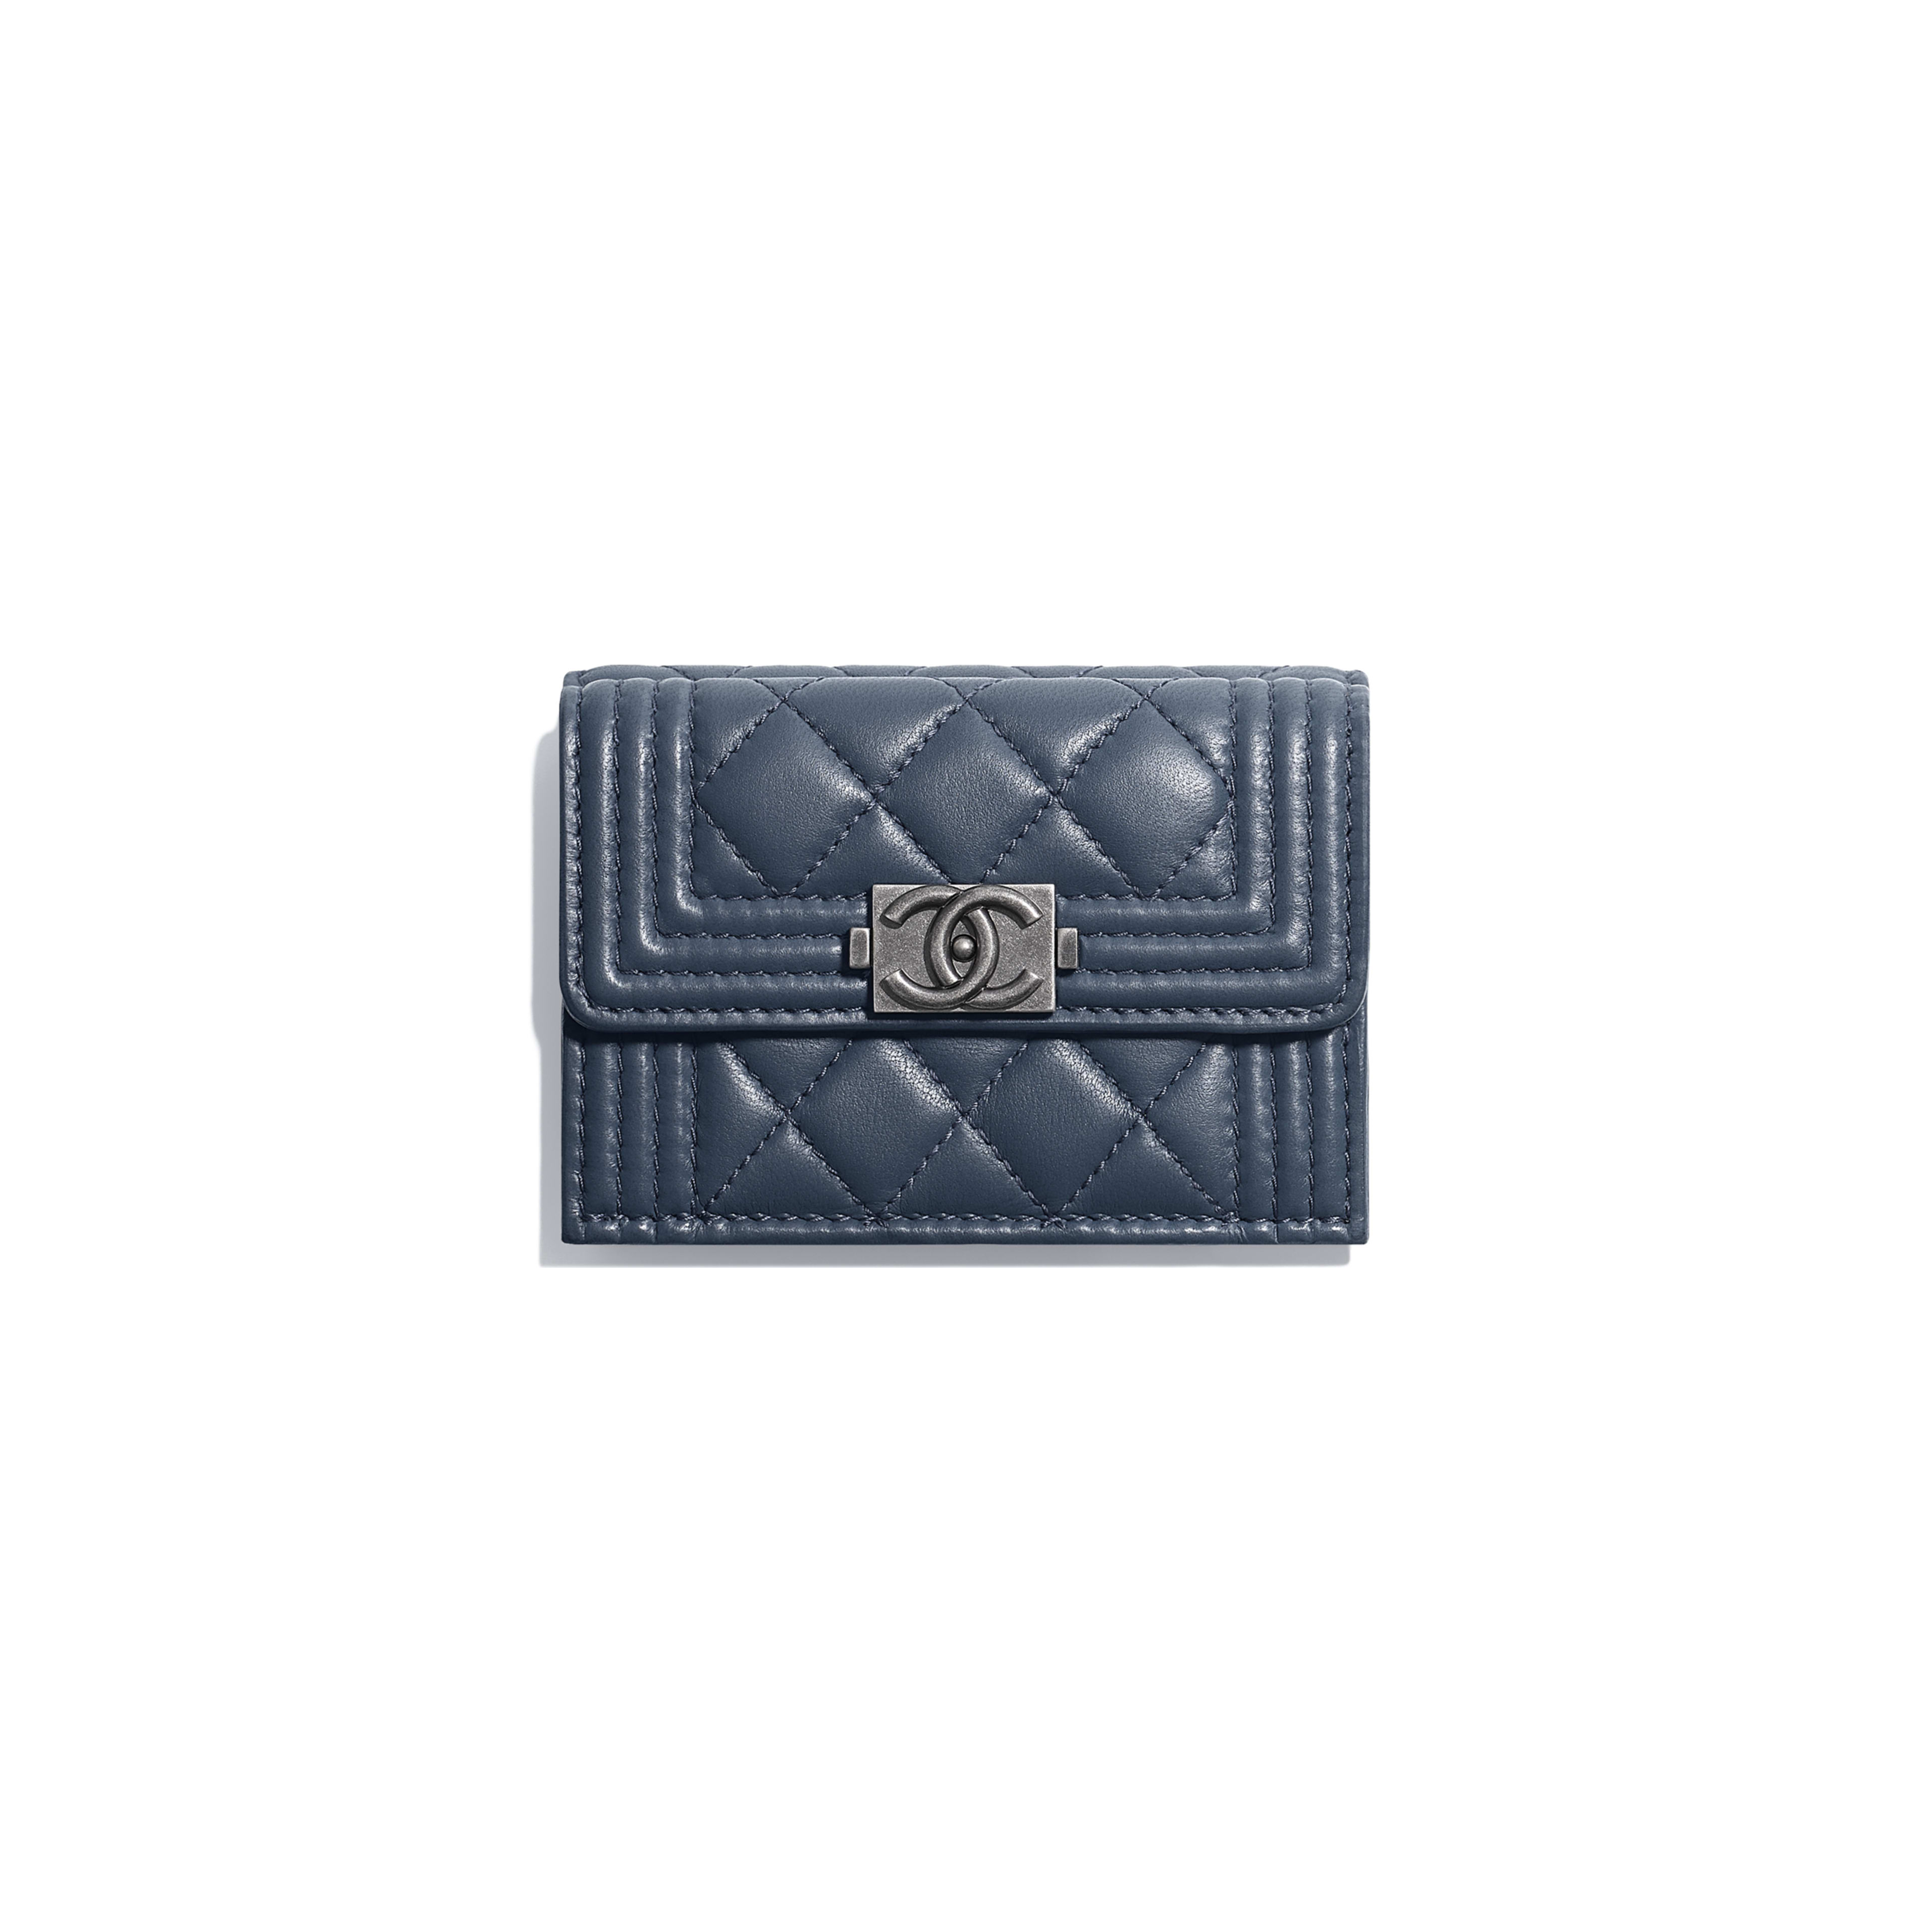 83c49cabd02e Small Flap Wallet Chanel Best Photo Justiceforkenny